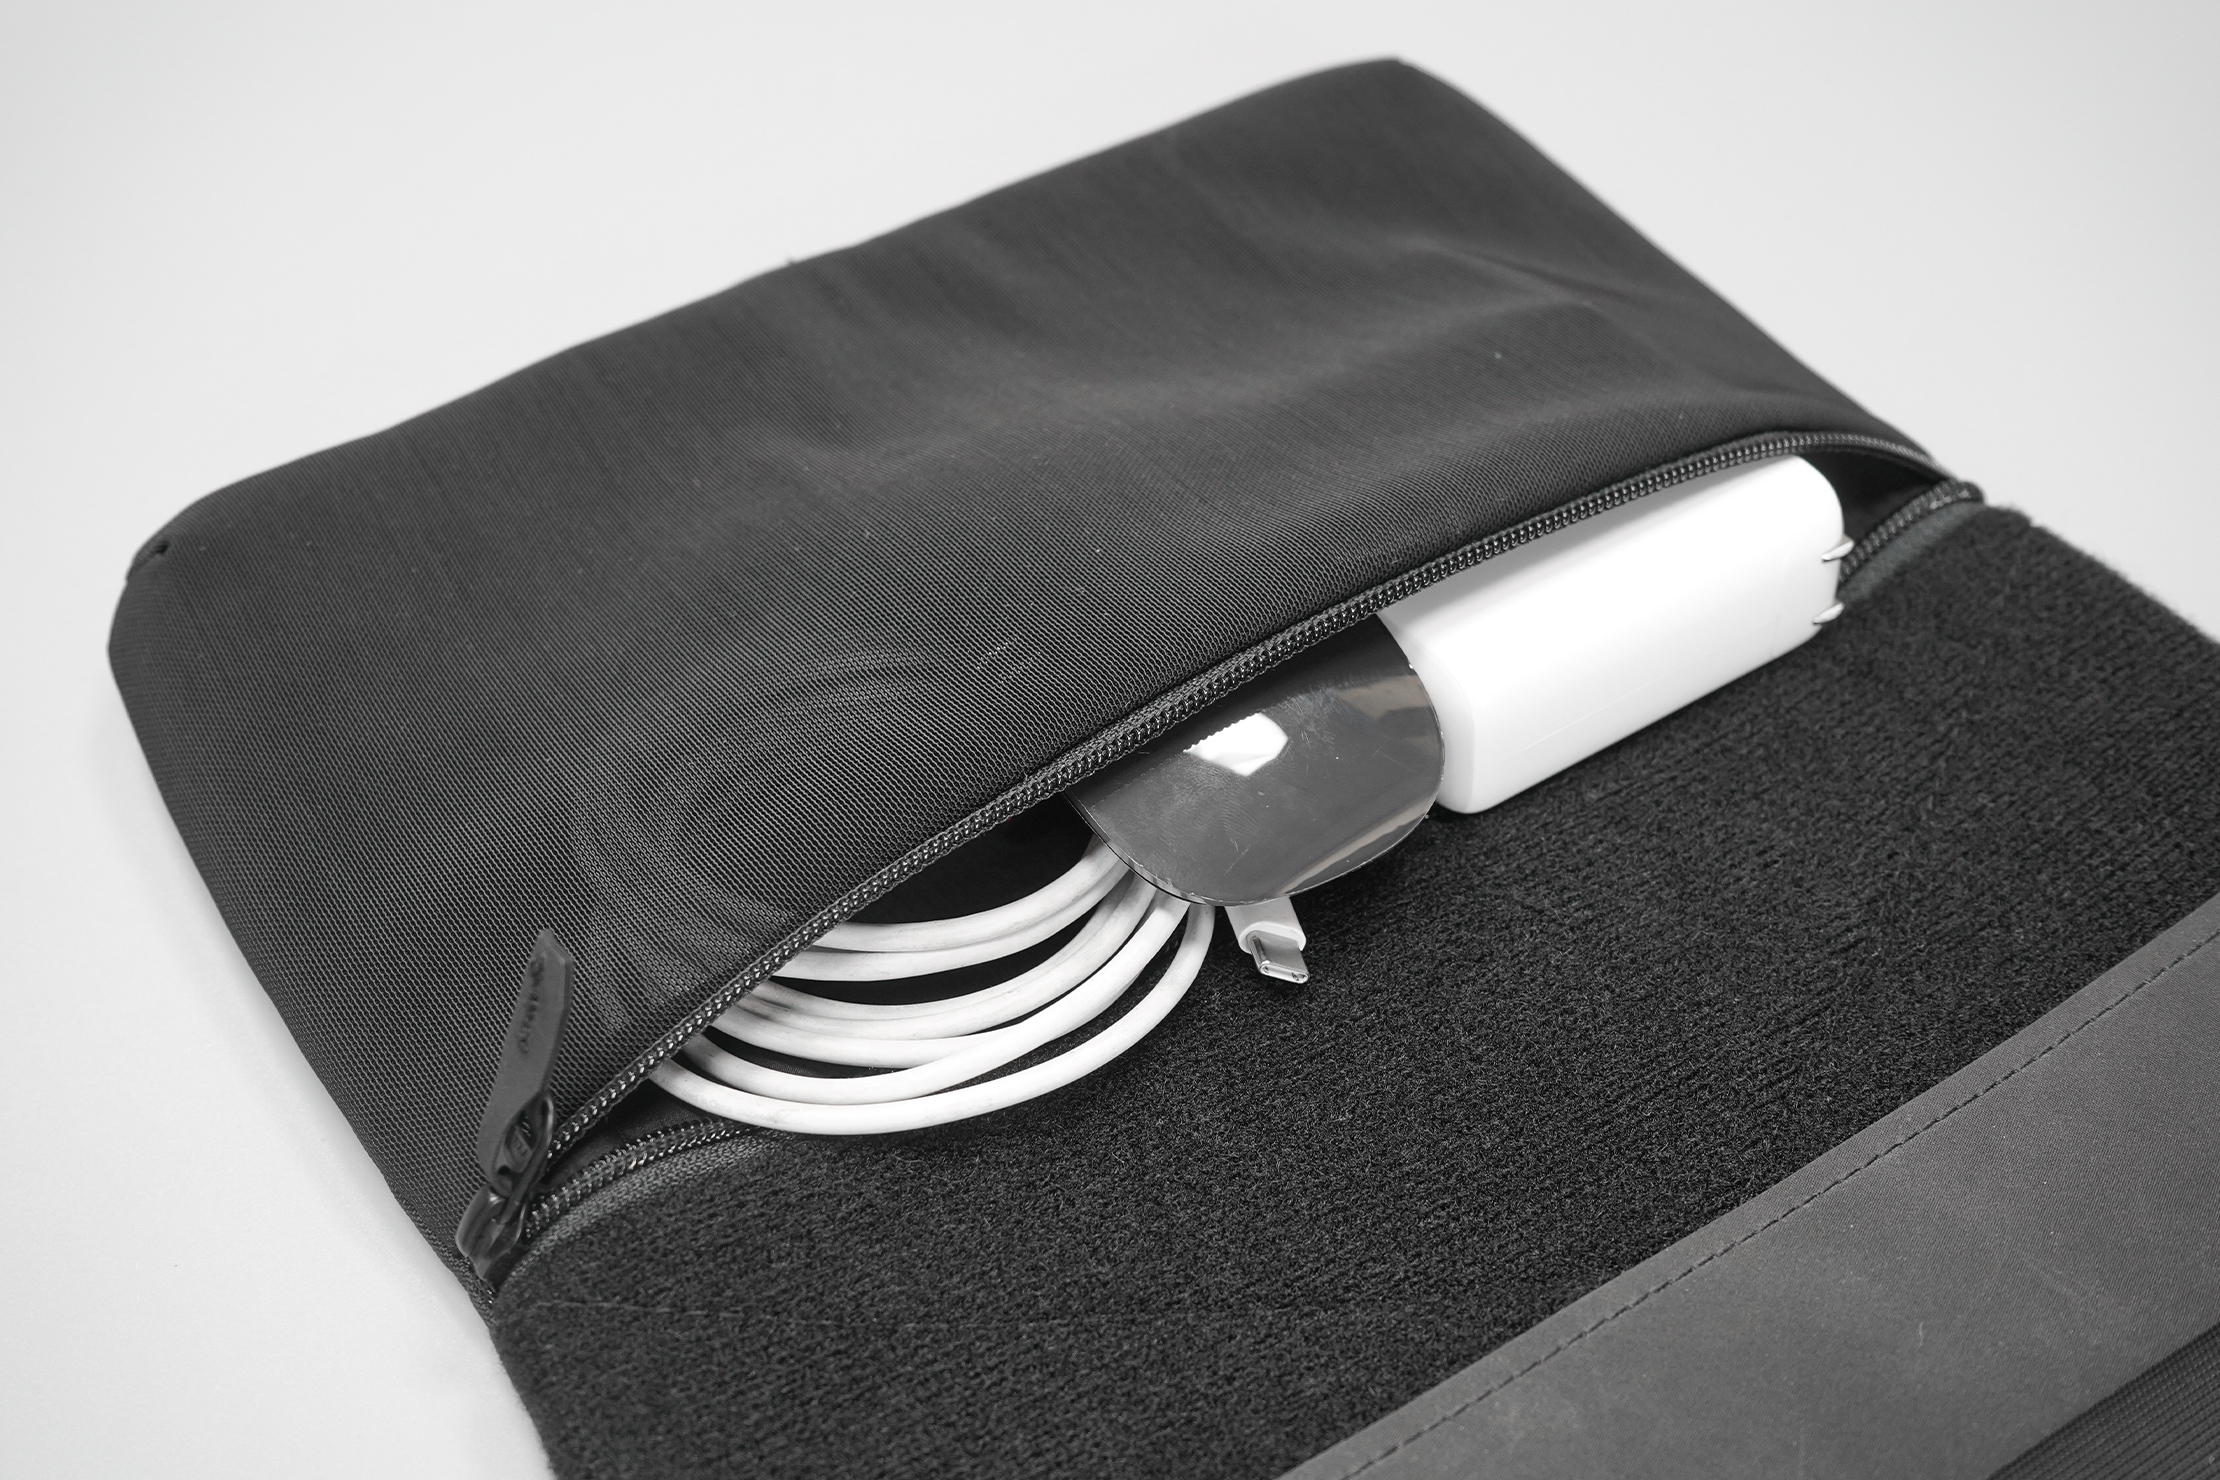 Matador Laptop Base Layer   The mesh pocket, filled with laptop accessories.